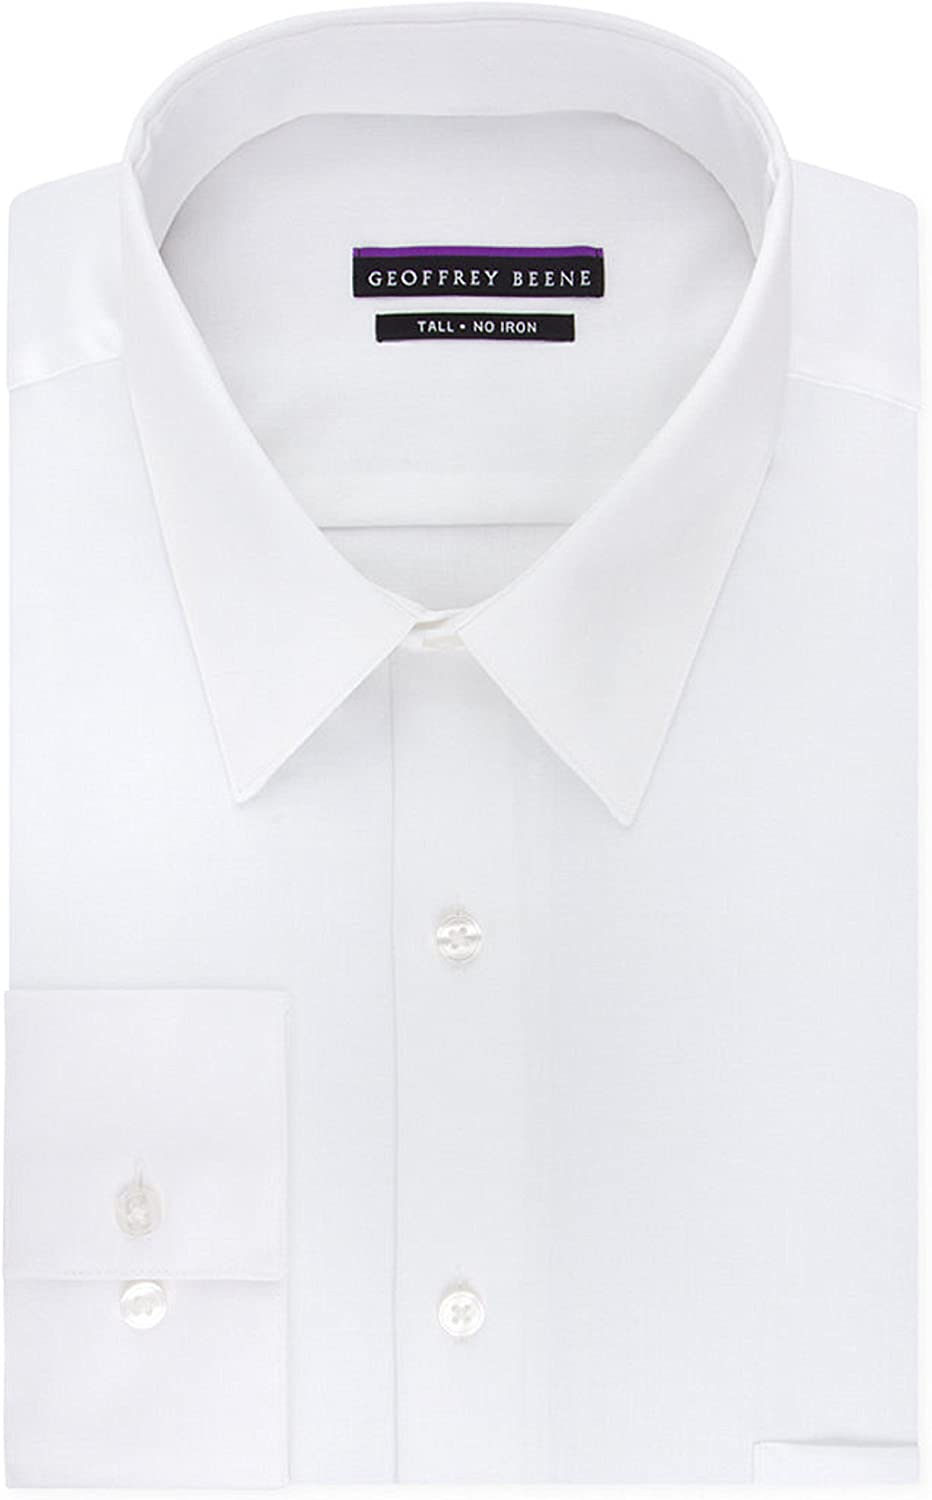 Geoffrey Beene Men's TALL FIT Dress Shirts Sateen Solid (Big and Tall): Clothing